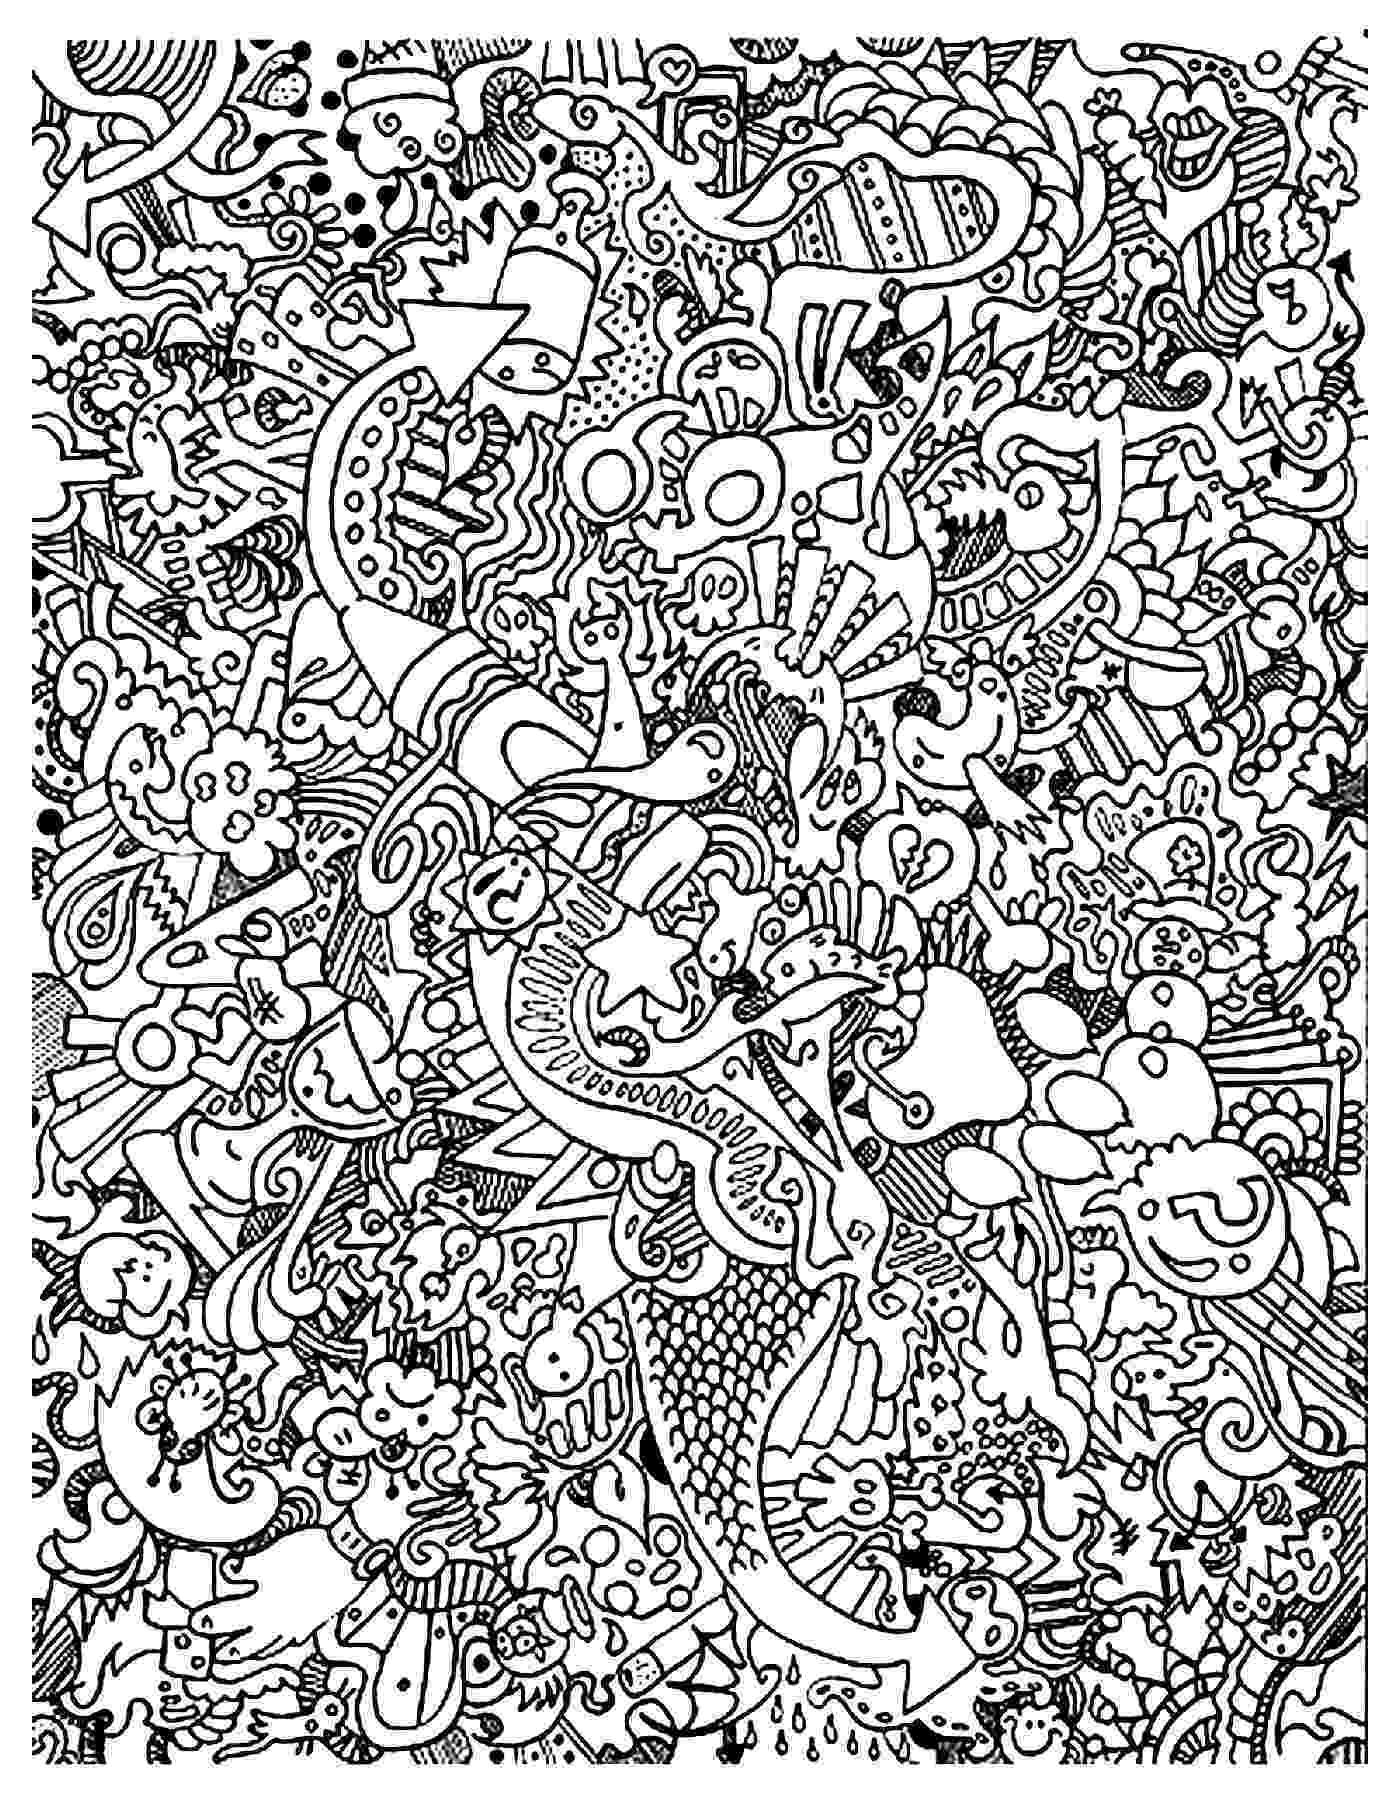 doodle art printables 20 free printable doodle art coloring pages for adults printables art doodle